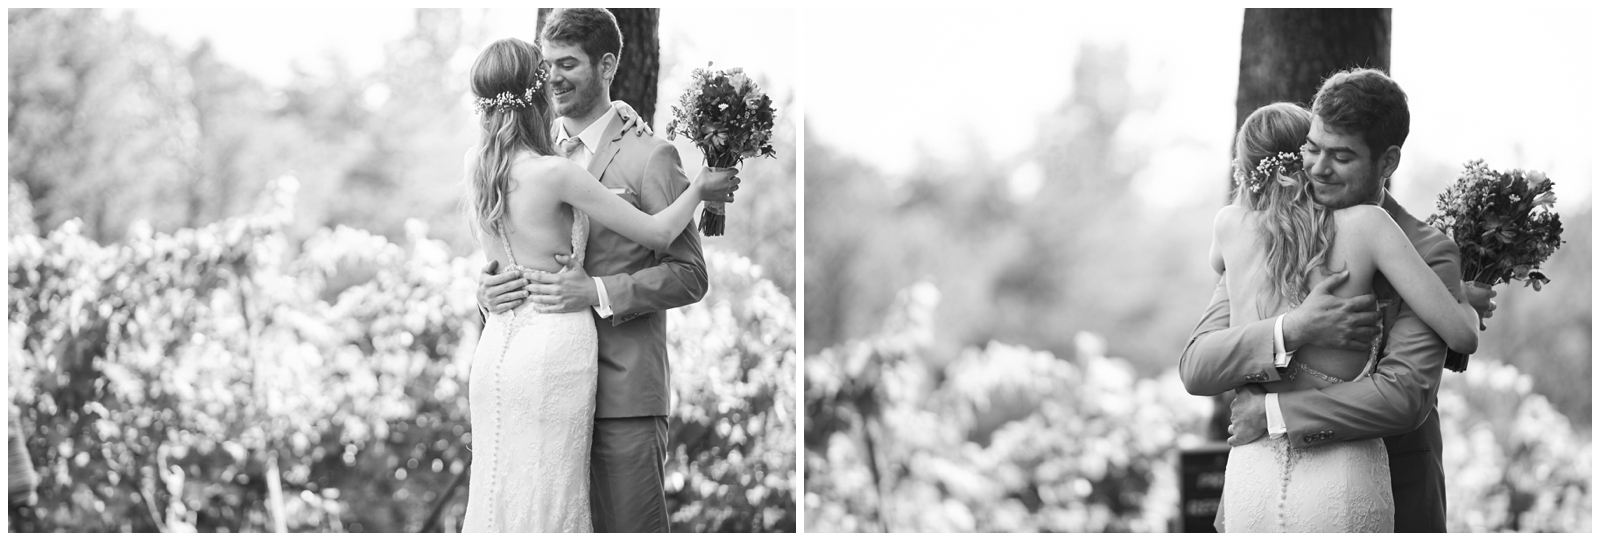 Kristen&Jason_Wolf Mountain Wedding_0011